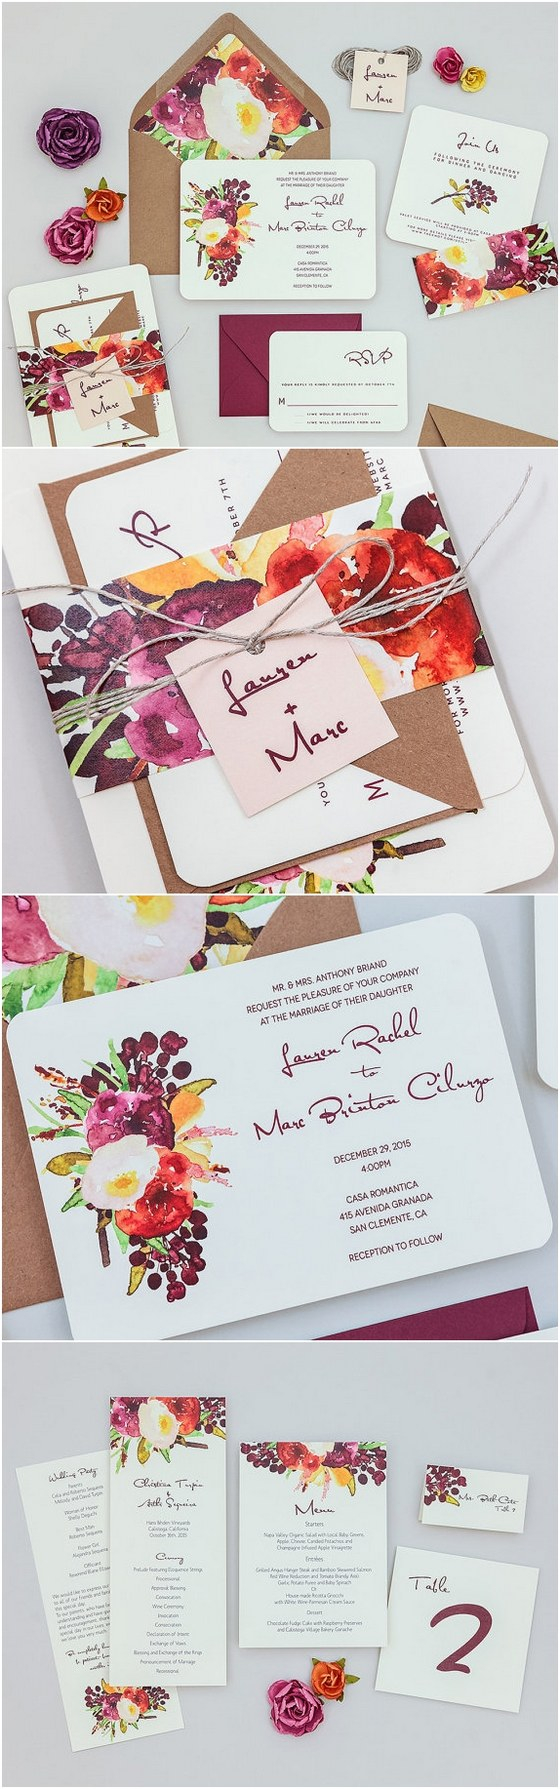 Wedding Invitations Sets 40 Watercolor Wedding Invitation Ideas You Will Love Deer Pearl